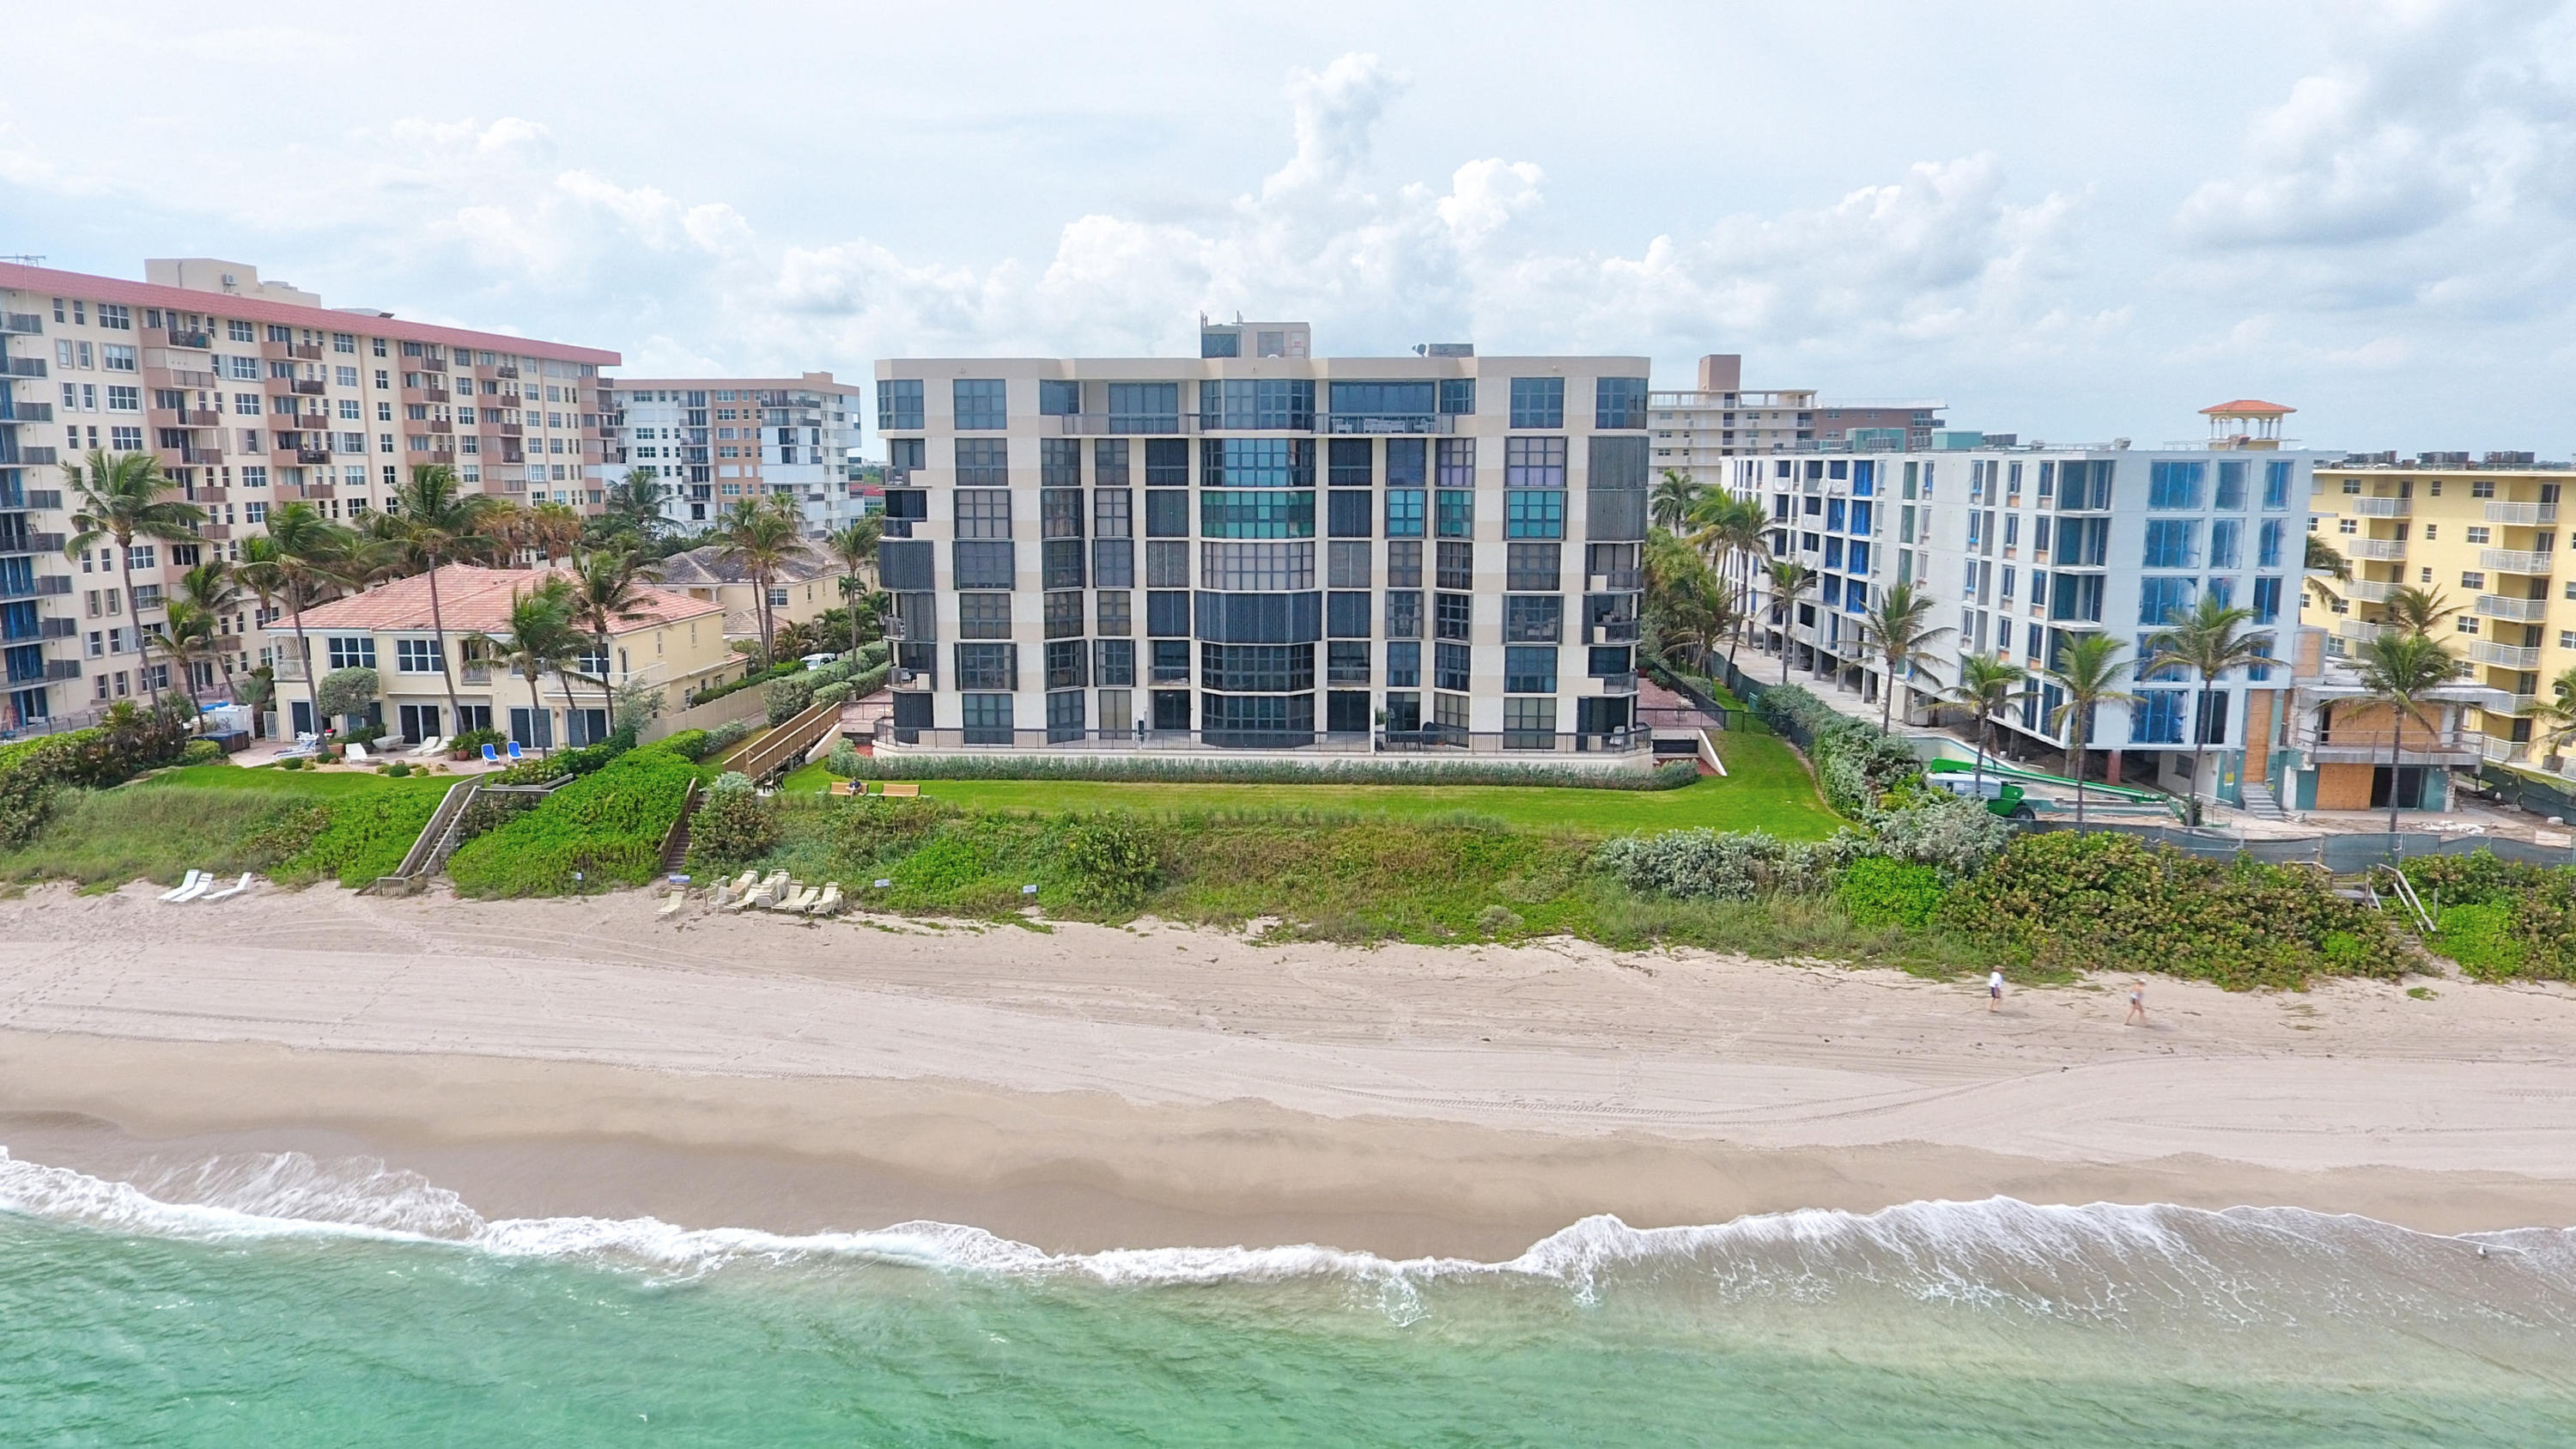 This absolutely stunning and spacious 3 bedrooms condo has a bonus room that can be used as an office/den or a 4th bedroom. Corner unit offers plenty of natural light and fabulous views. Watch the sunrise on the ocean and the sunset on the Intracoastal Waterway from your oversized private covered patios! The property has been completely remodeled with stylish and smart architectural features, including high impact windows, marble floors, custom built-ins, well-appointed closets and a raised eat-in kitchen area, to better enjoy the boat parade. Master bath features dual sinks and a large jetted whirlpool bathtub. Hillsboro Ocean Club is a well-managed boutique building directly on the beach with 24-hour lobby security and gated garage parkin